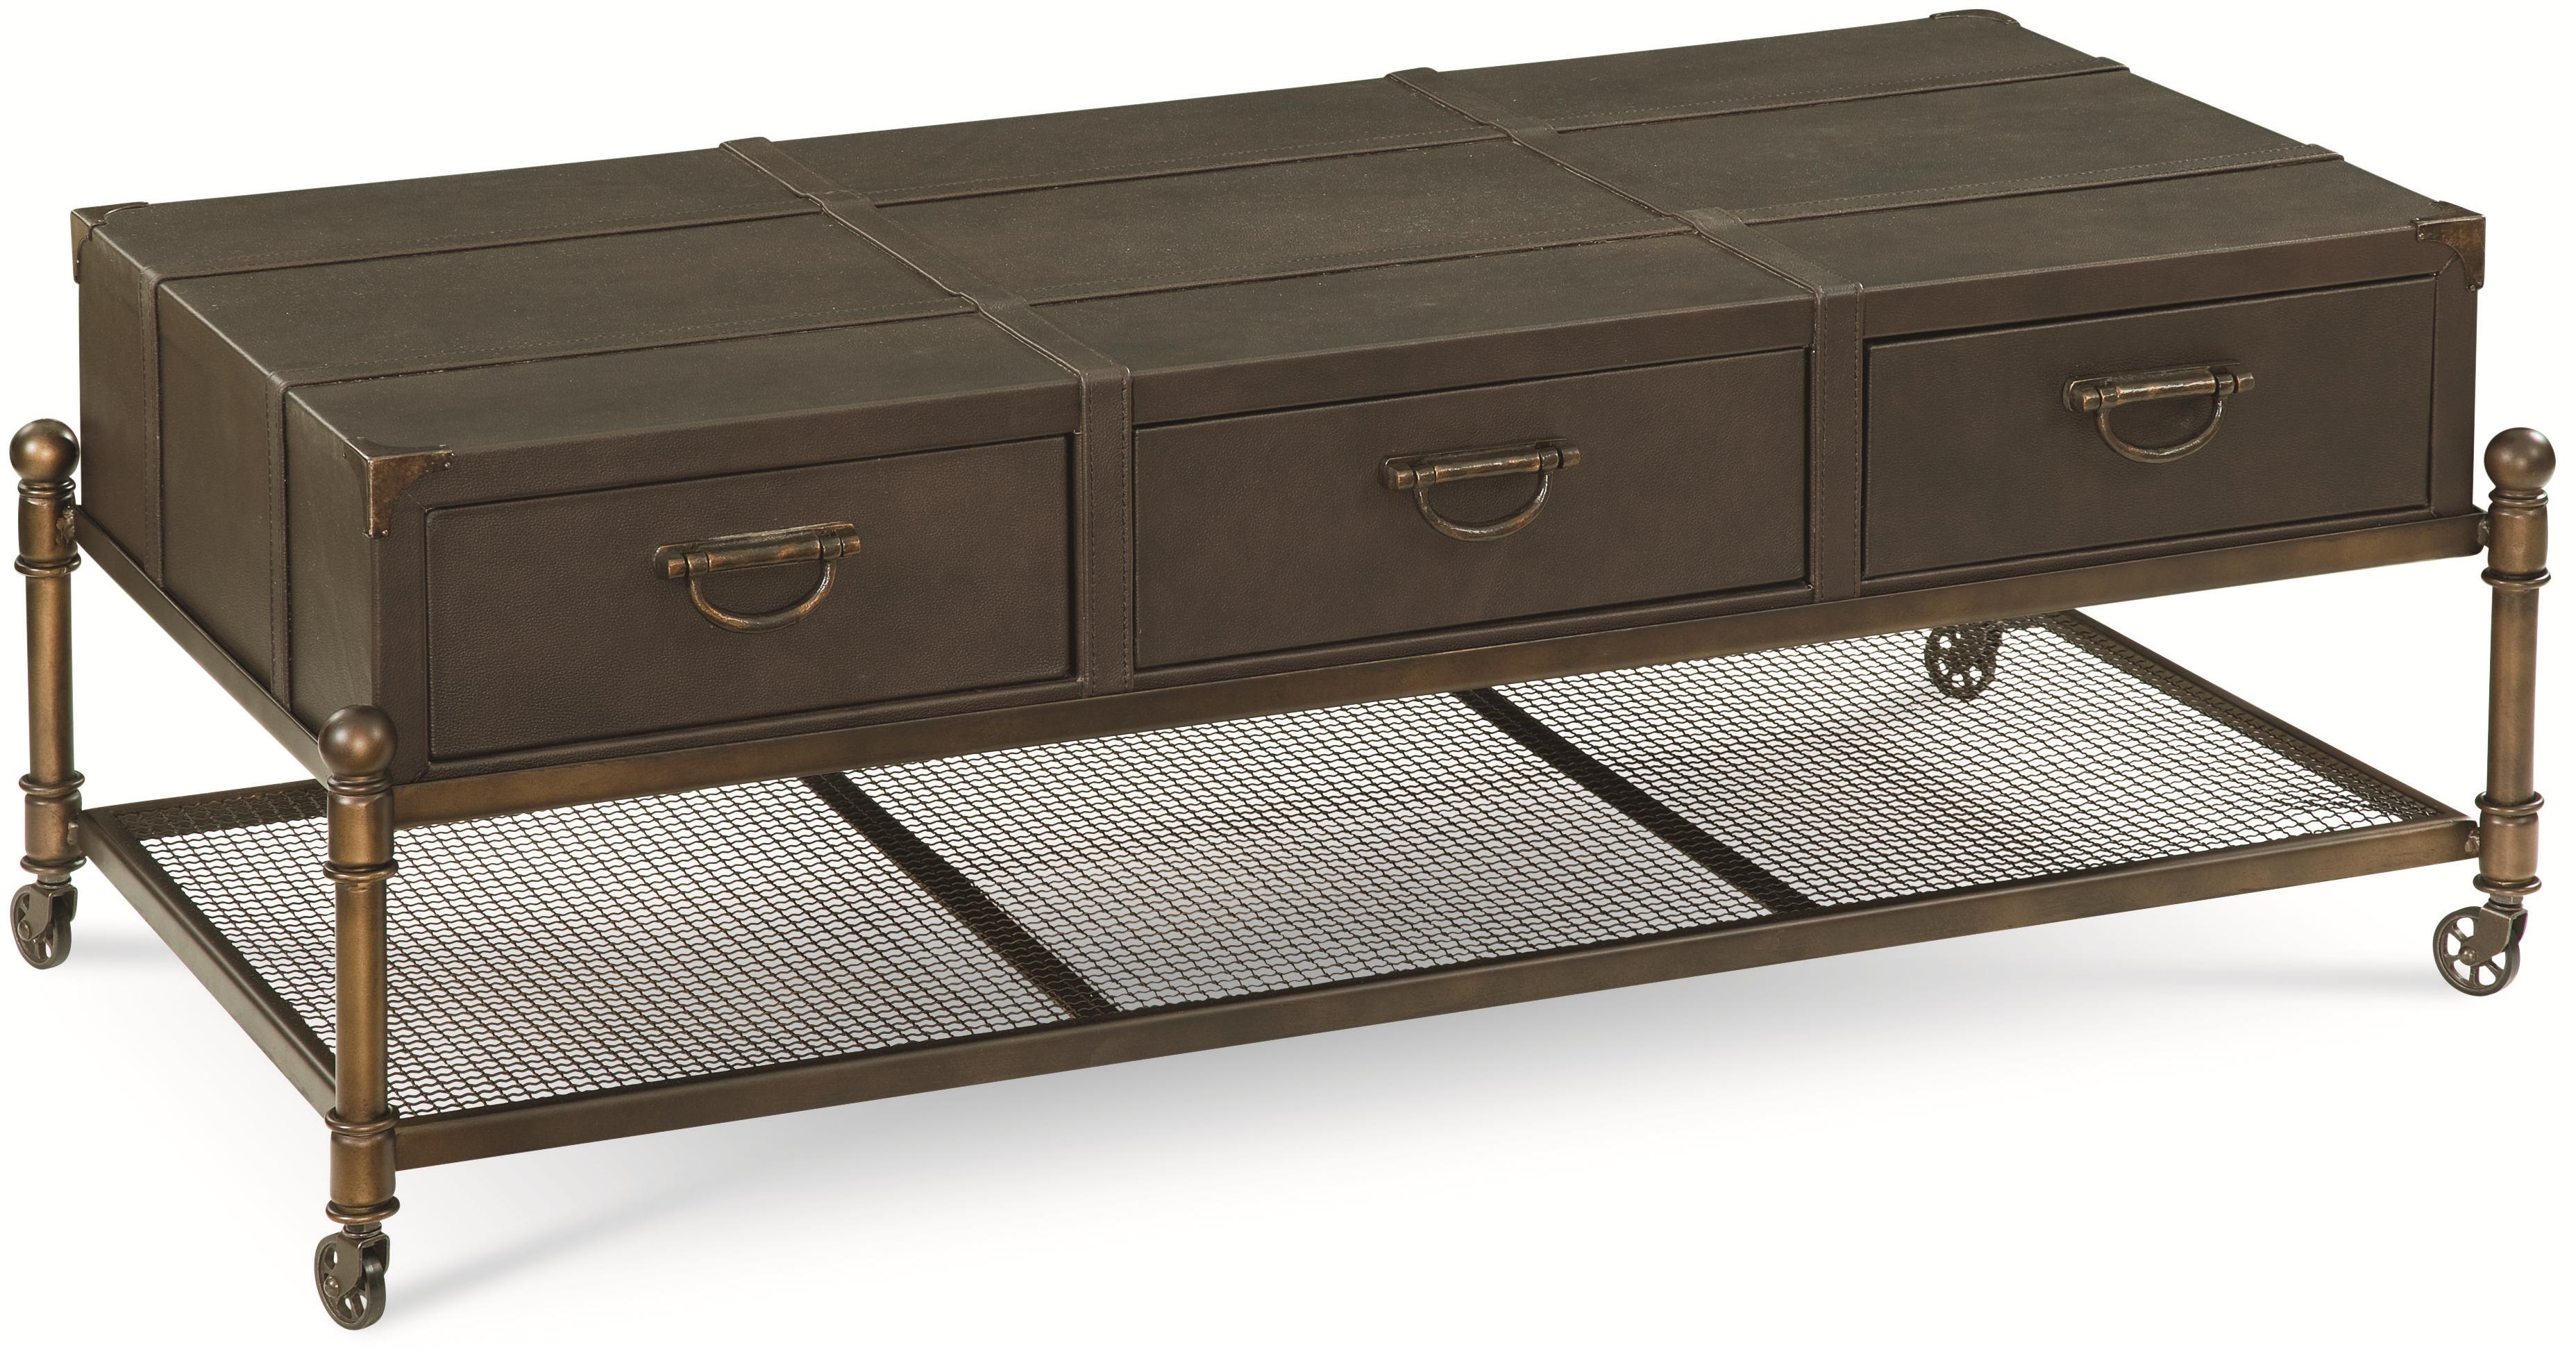 Thomasville® American Anthem Leather Cocktail Table - Item Number: 82891-160